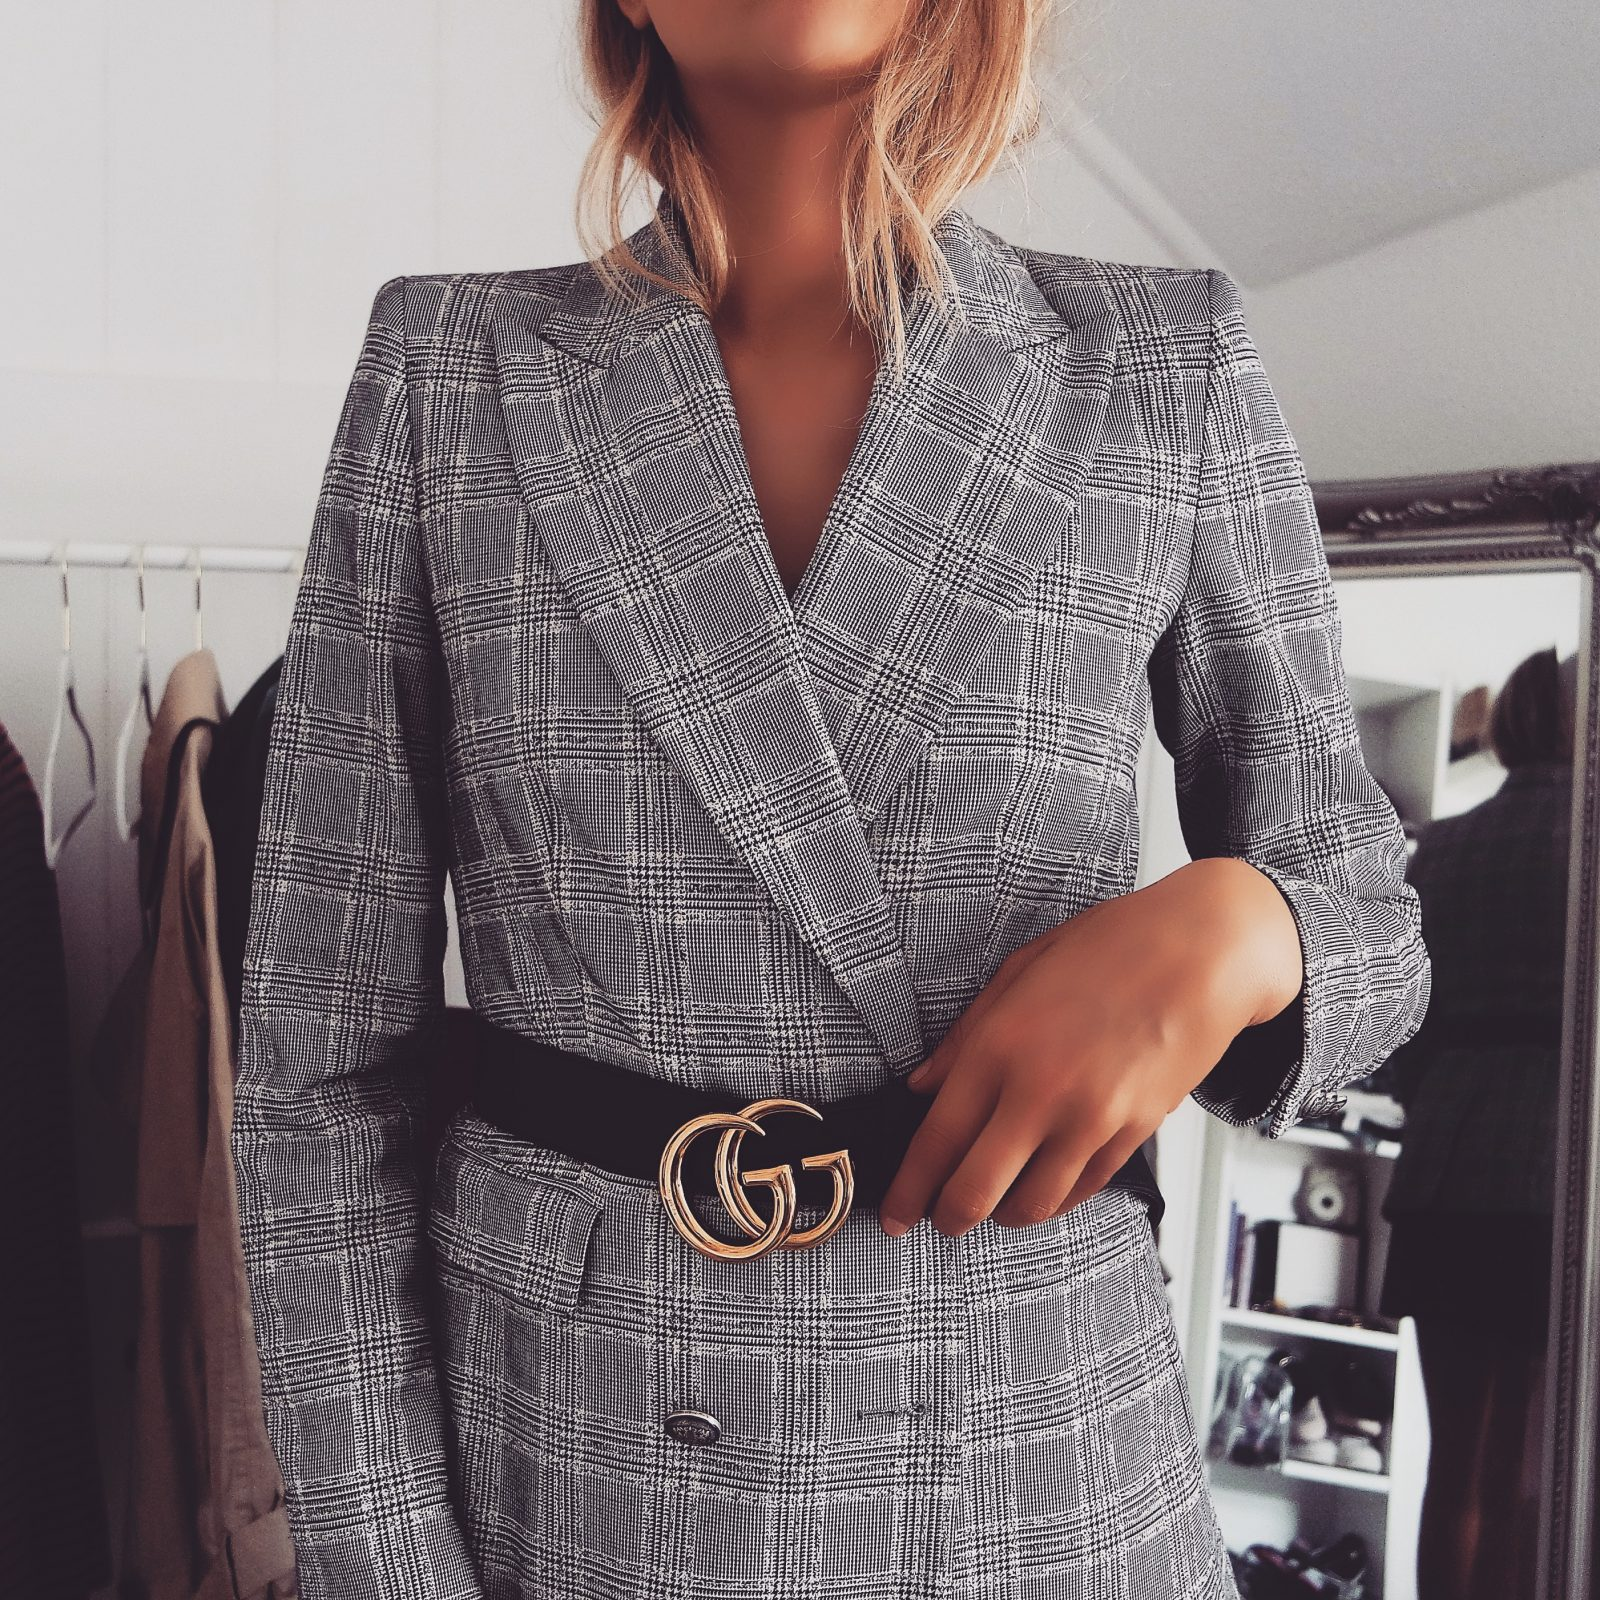 The Gucci Belt - Zara Check Blazer